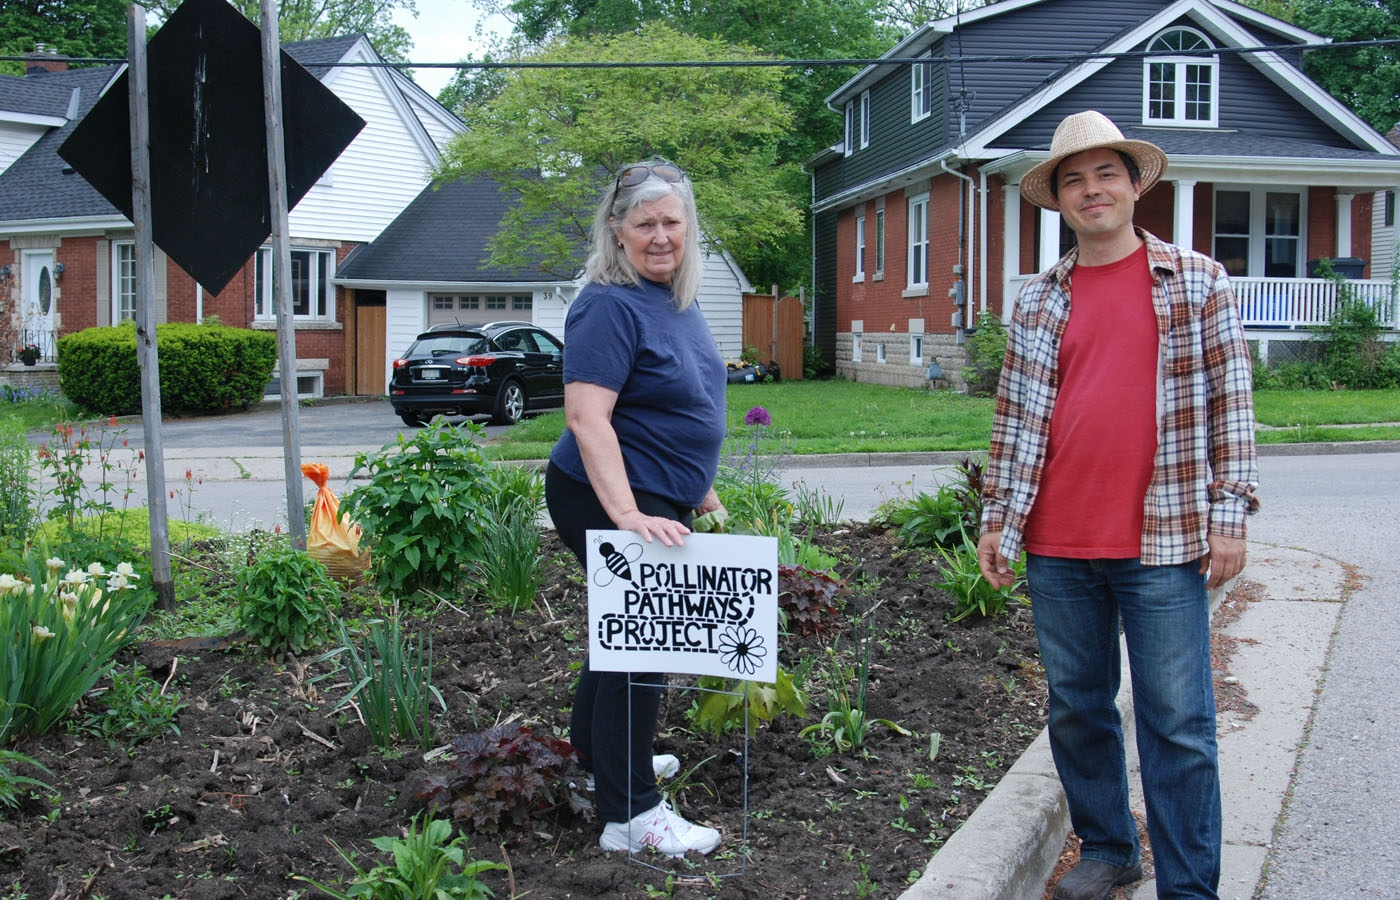 Lori Luscombe and Gabor Sass of the Pollinator Pathways Project in London, Ontario